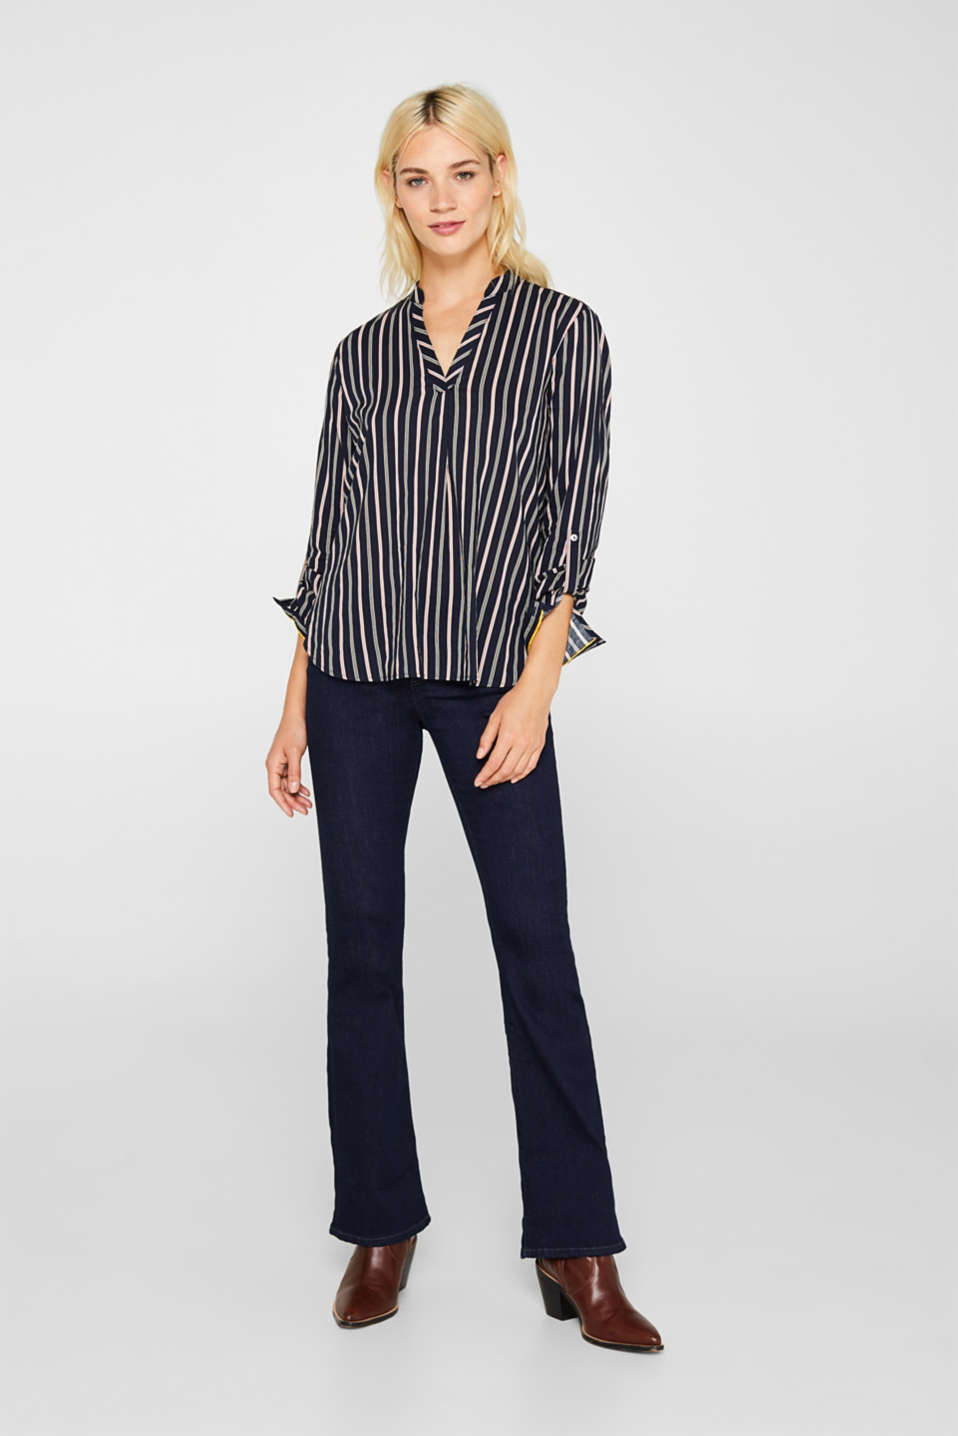 Slip-on blouse with stripes, NAVY, detail image number 1